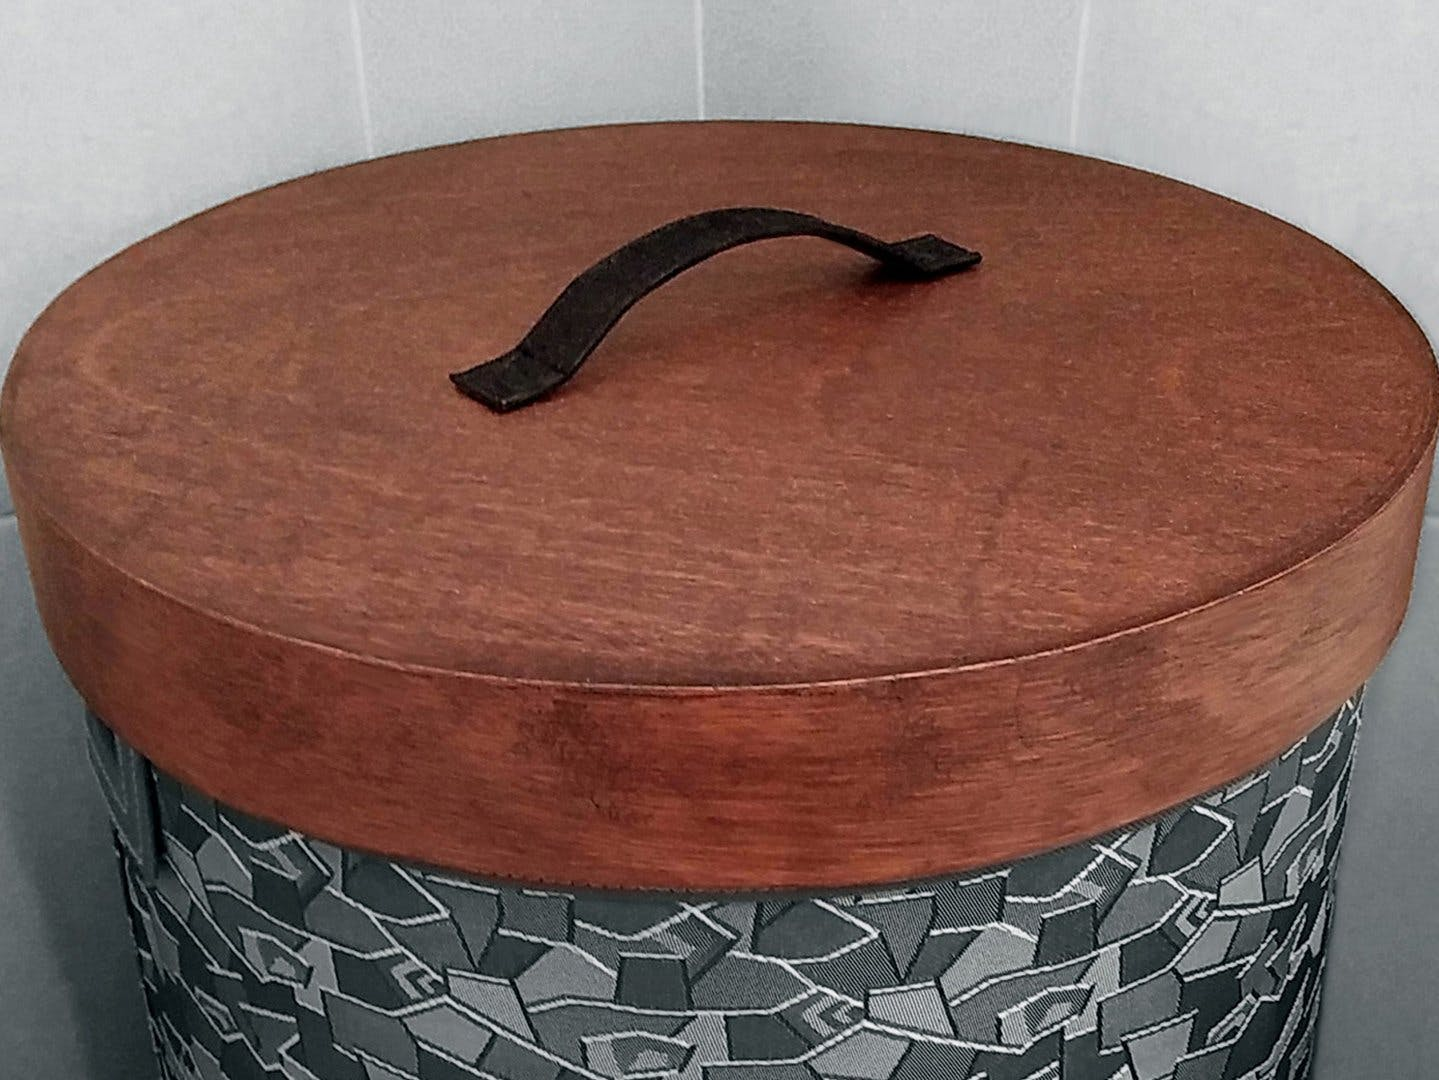 How to make a Round Wooden Lid for Hampers & Baskets